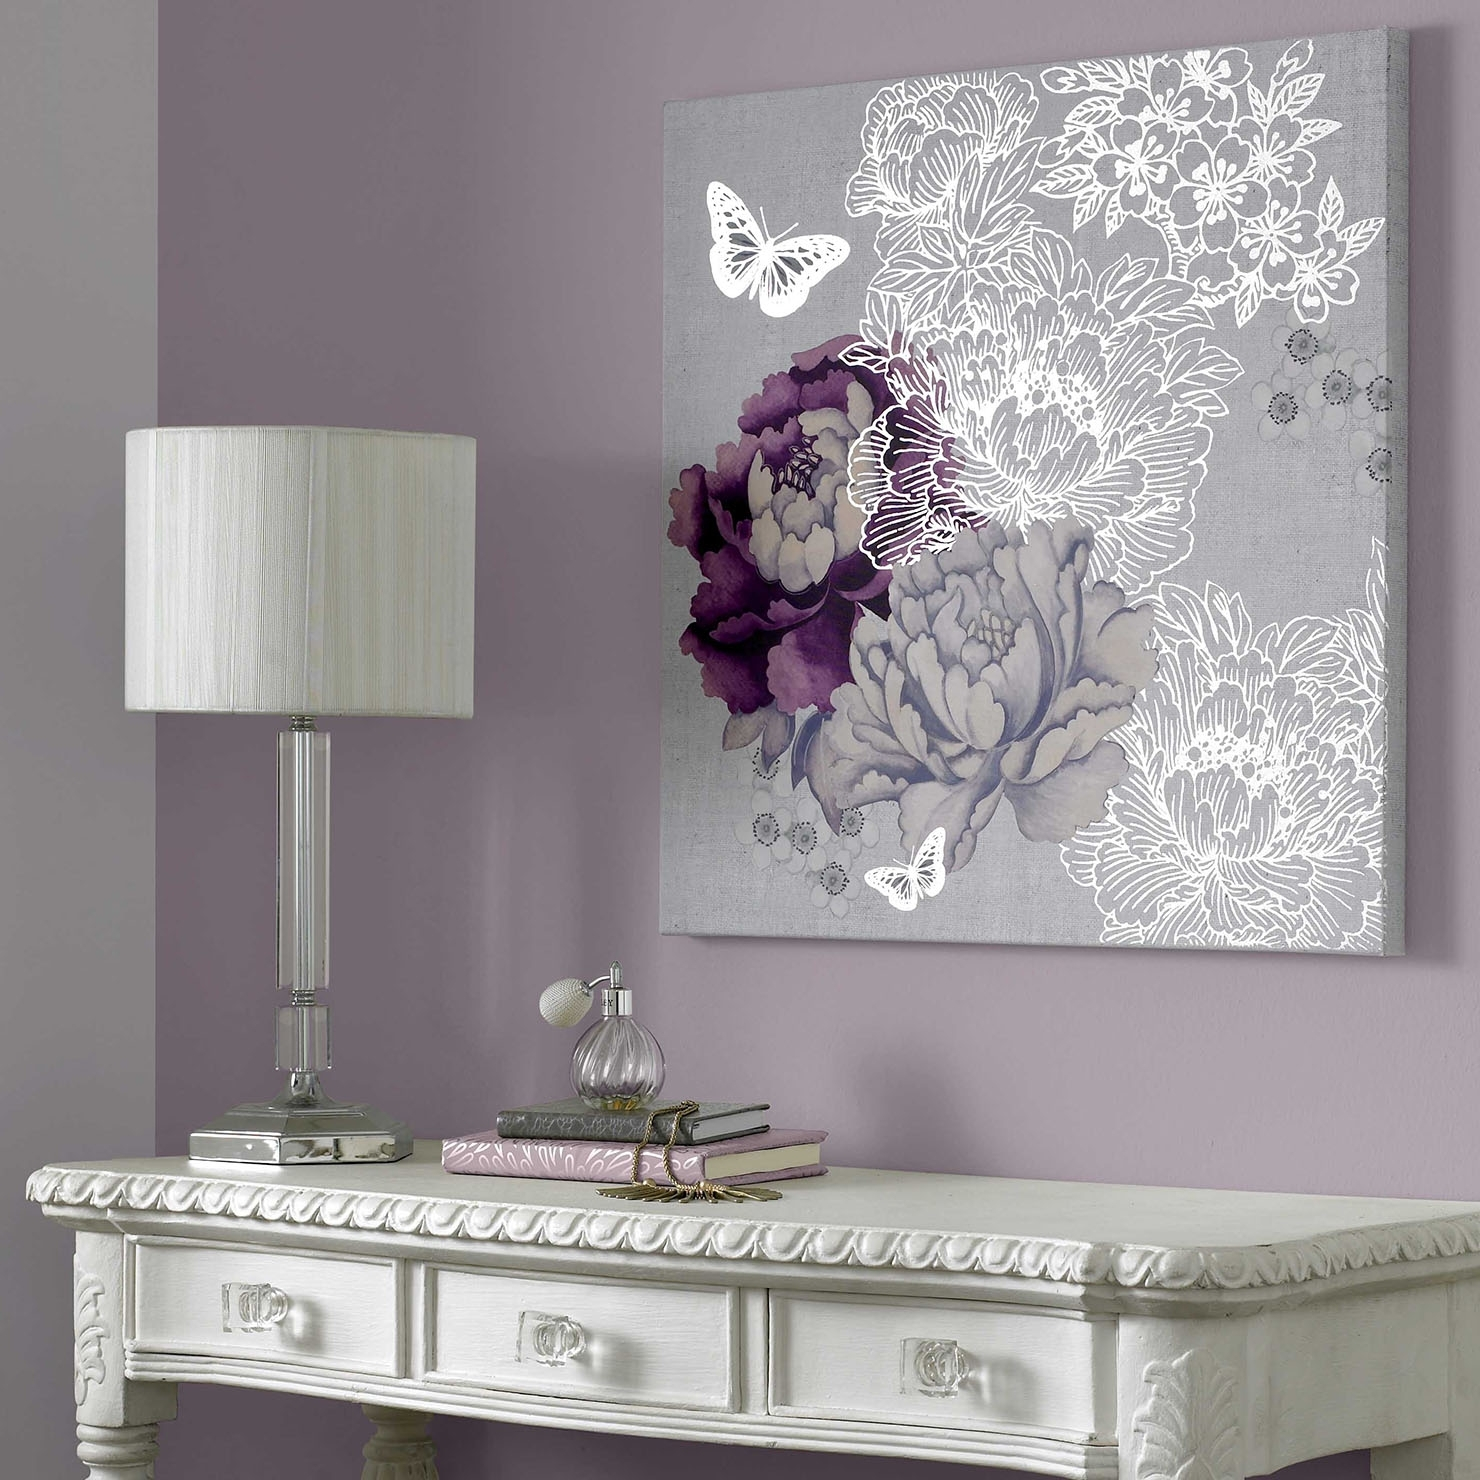 All That Glitters – Floral Metallic, Wall Art, 60x60cm | Achica Intended For Most Up To Date House Of Fraser Canvas Wall Art (View 15 of 15)